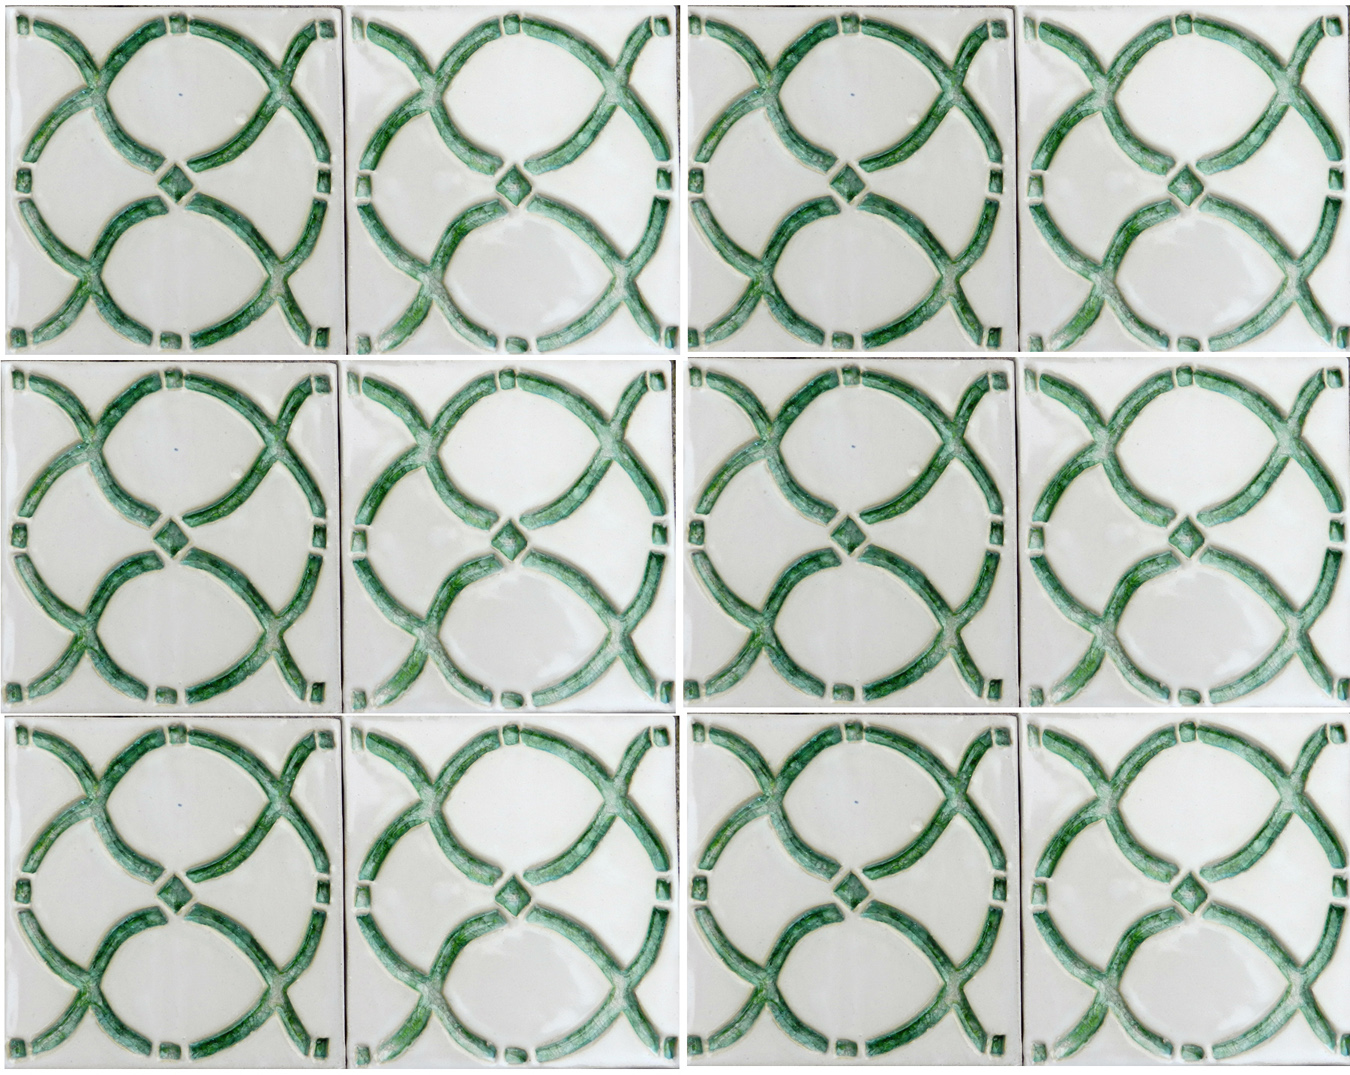 Crystal Lattice with Green glass mural